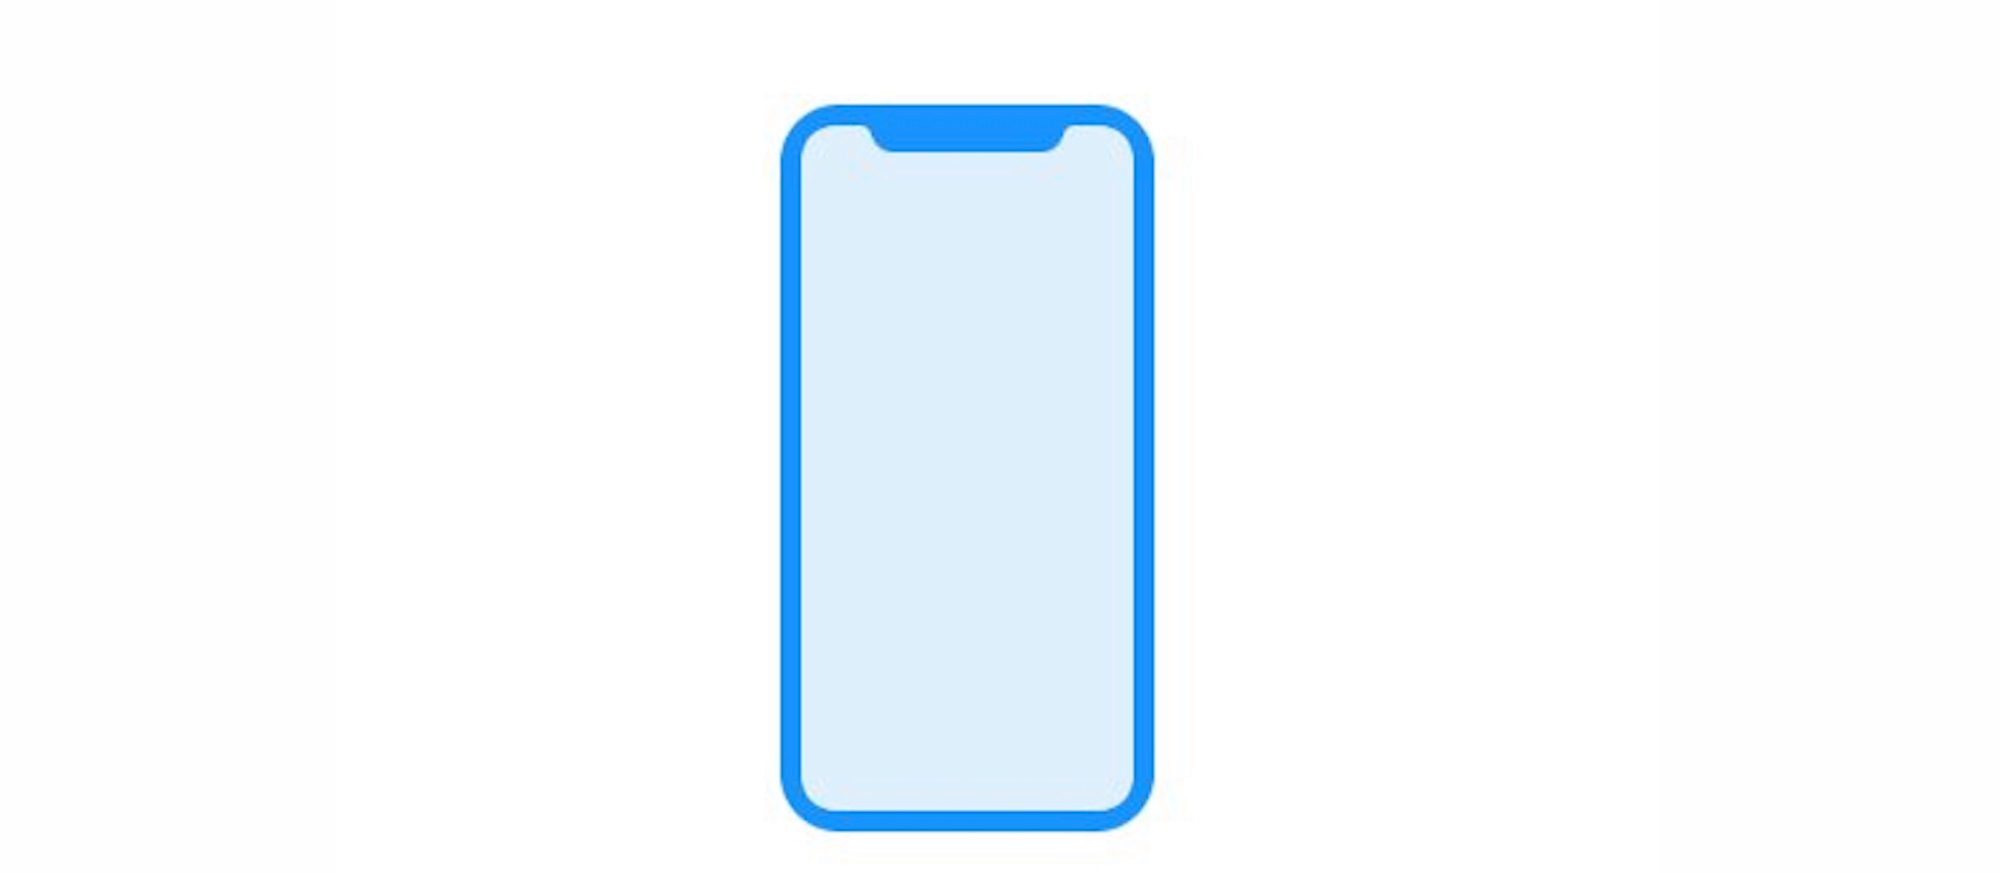 HomePod firmware seemingly confirms iPhone 8 front design & support for 'Face ID'